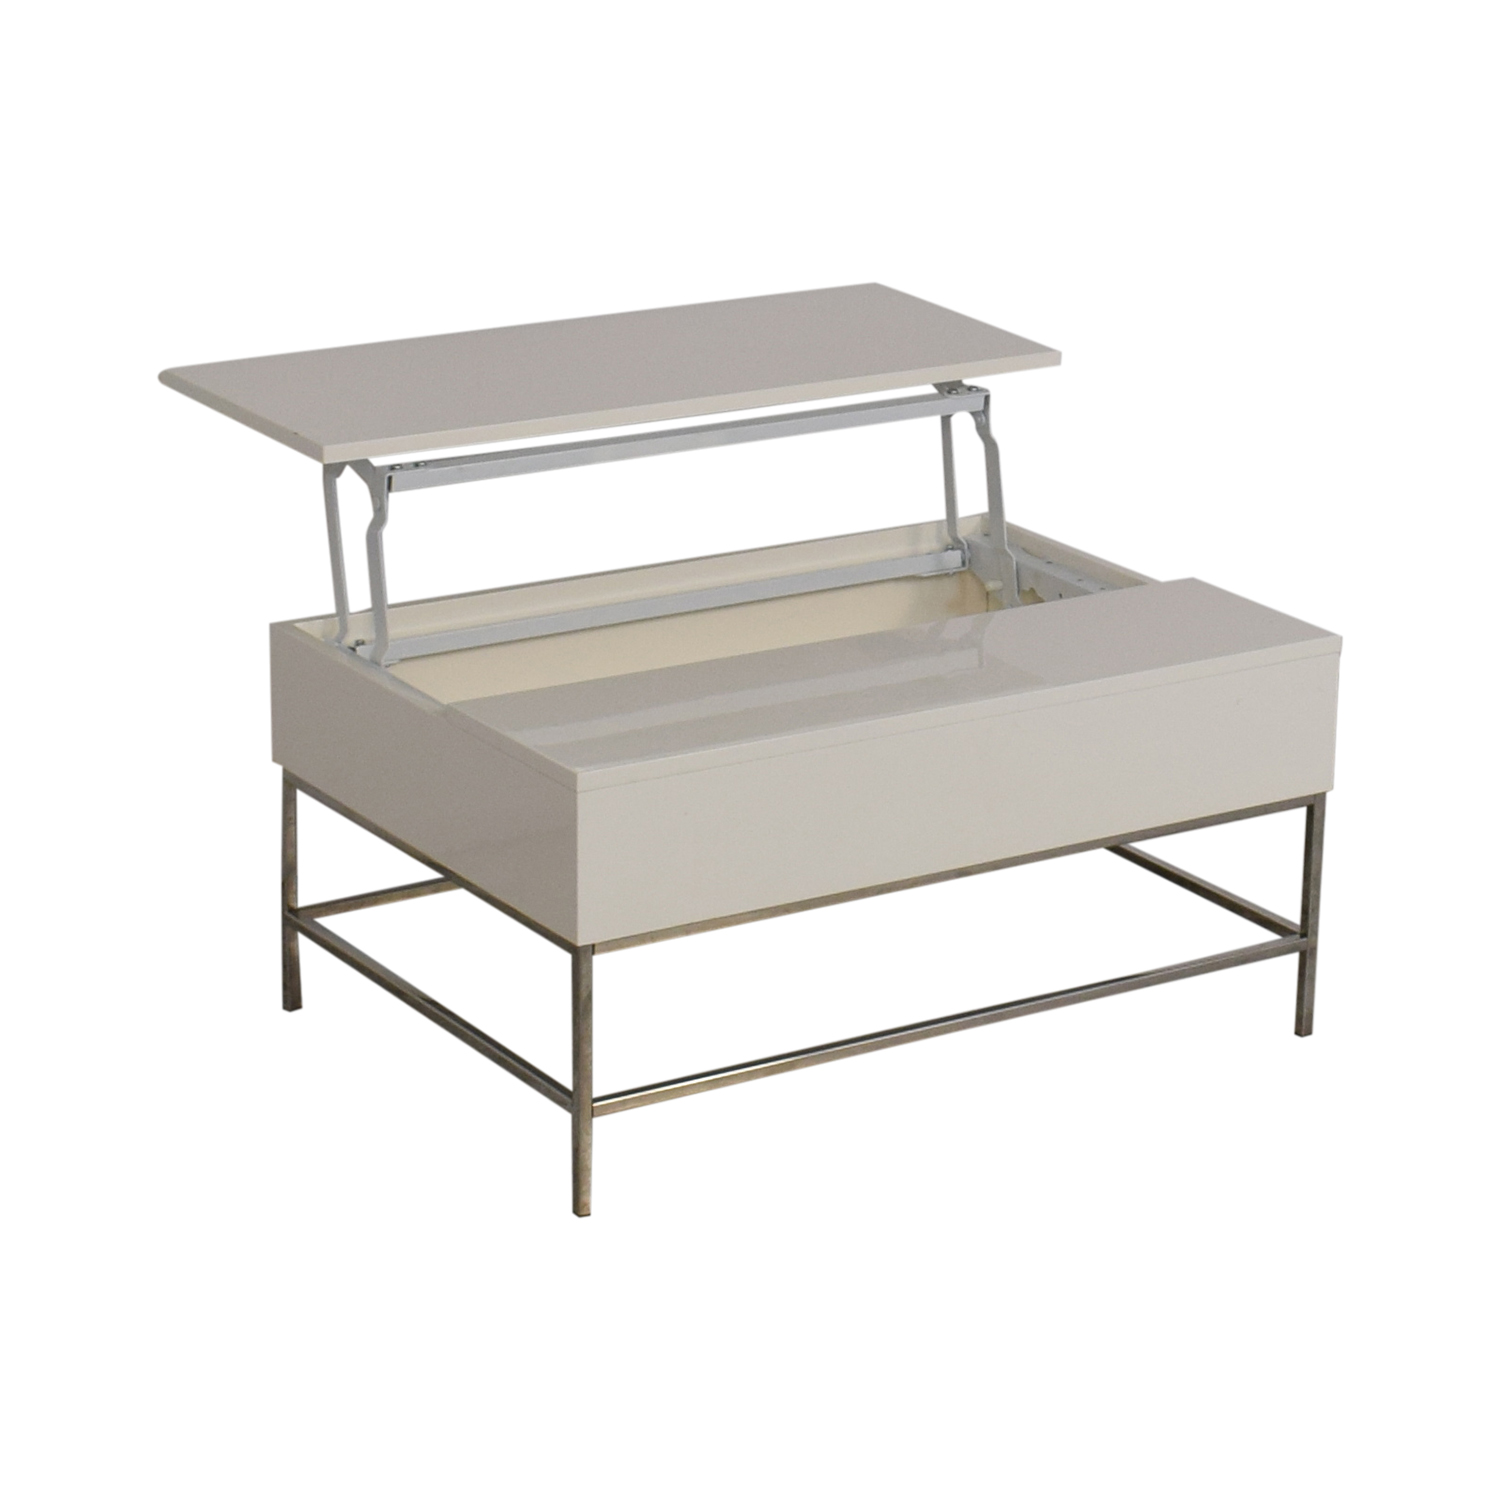 West Elm West Elm Lacquer Storage Coffee Table for sale